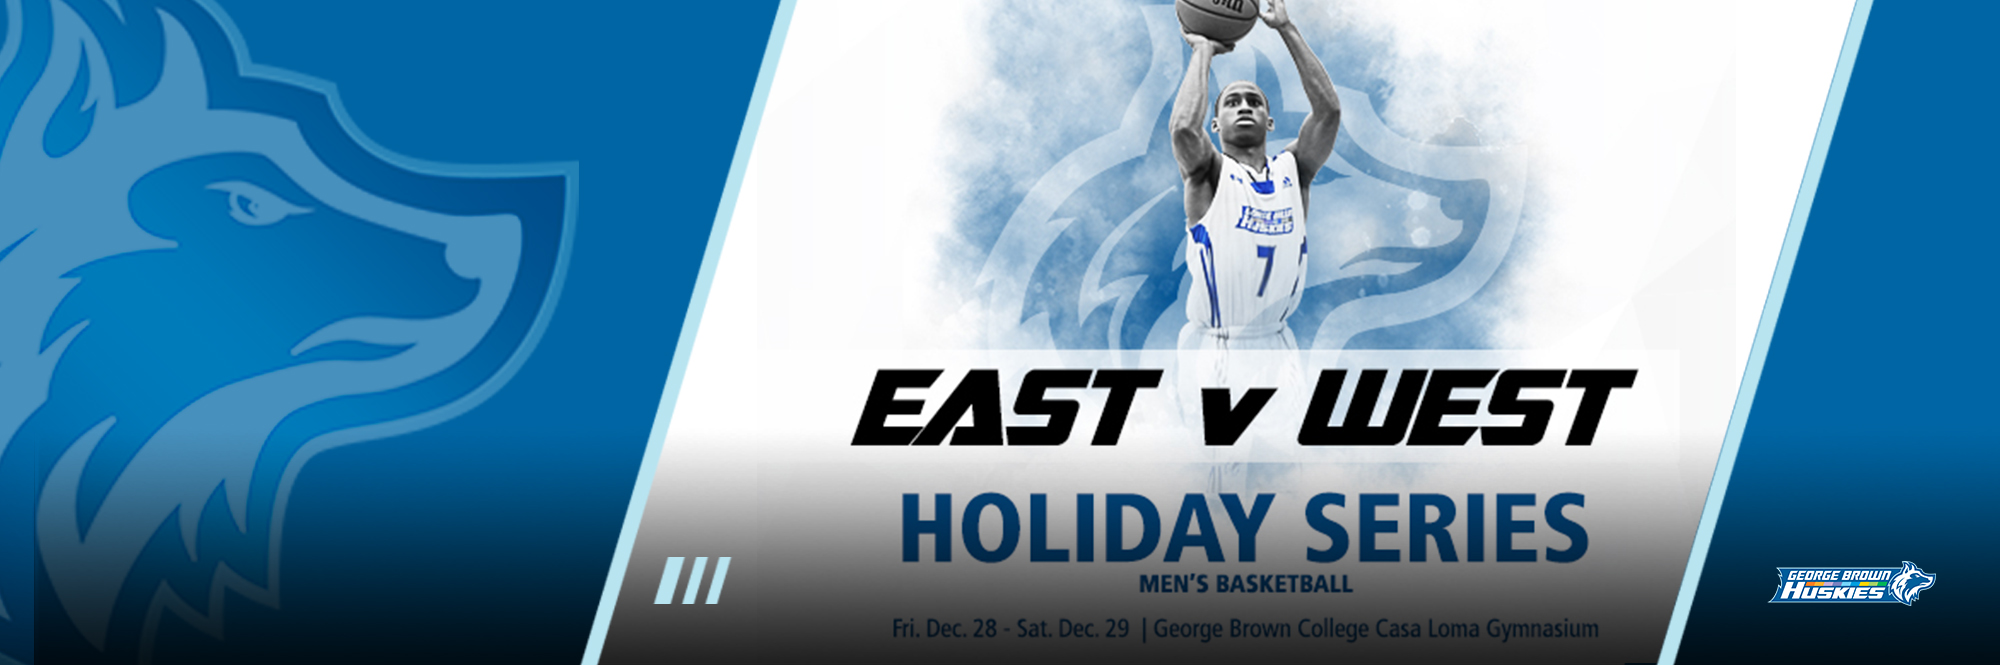 HUSKIES MEN'S BASKETBALL TO HOST ANNUAL EAST/WEST HOLIDAY SERIES